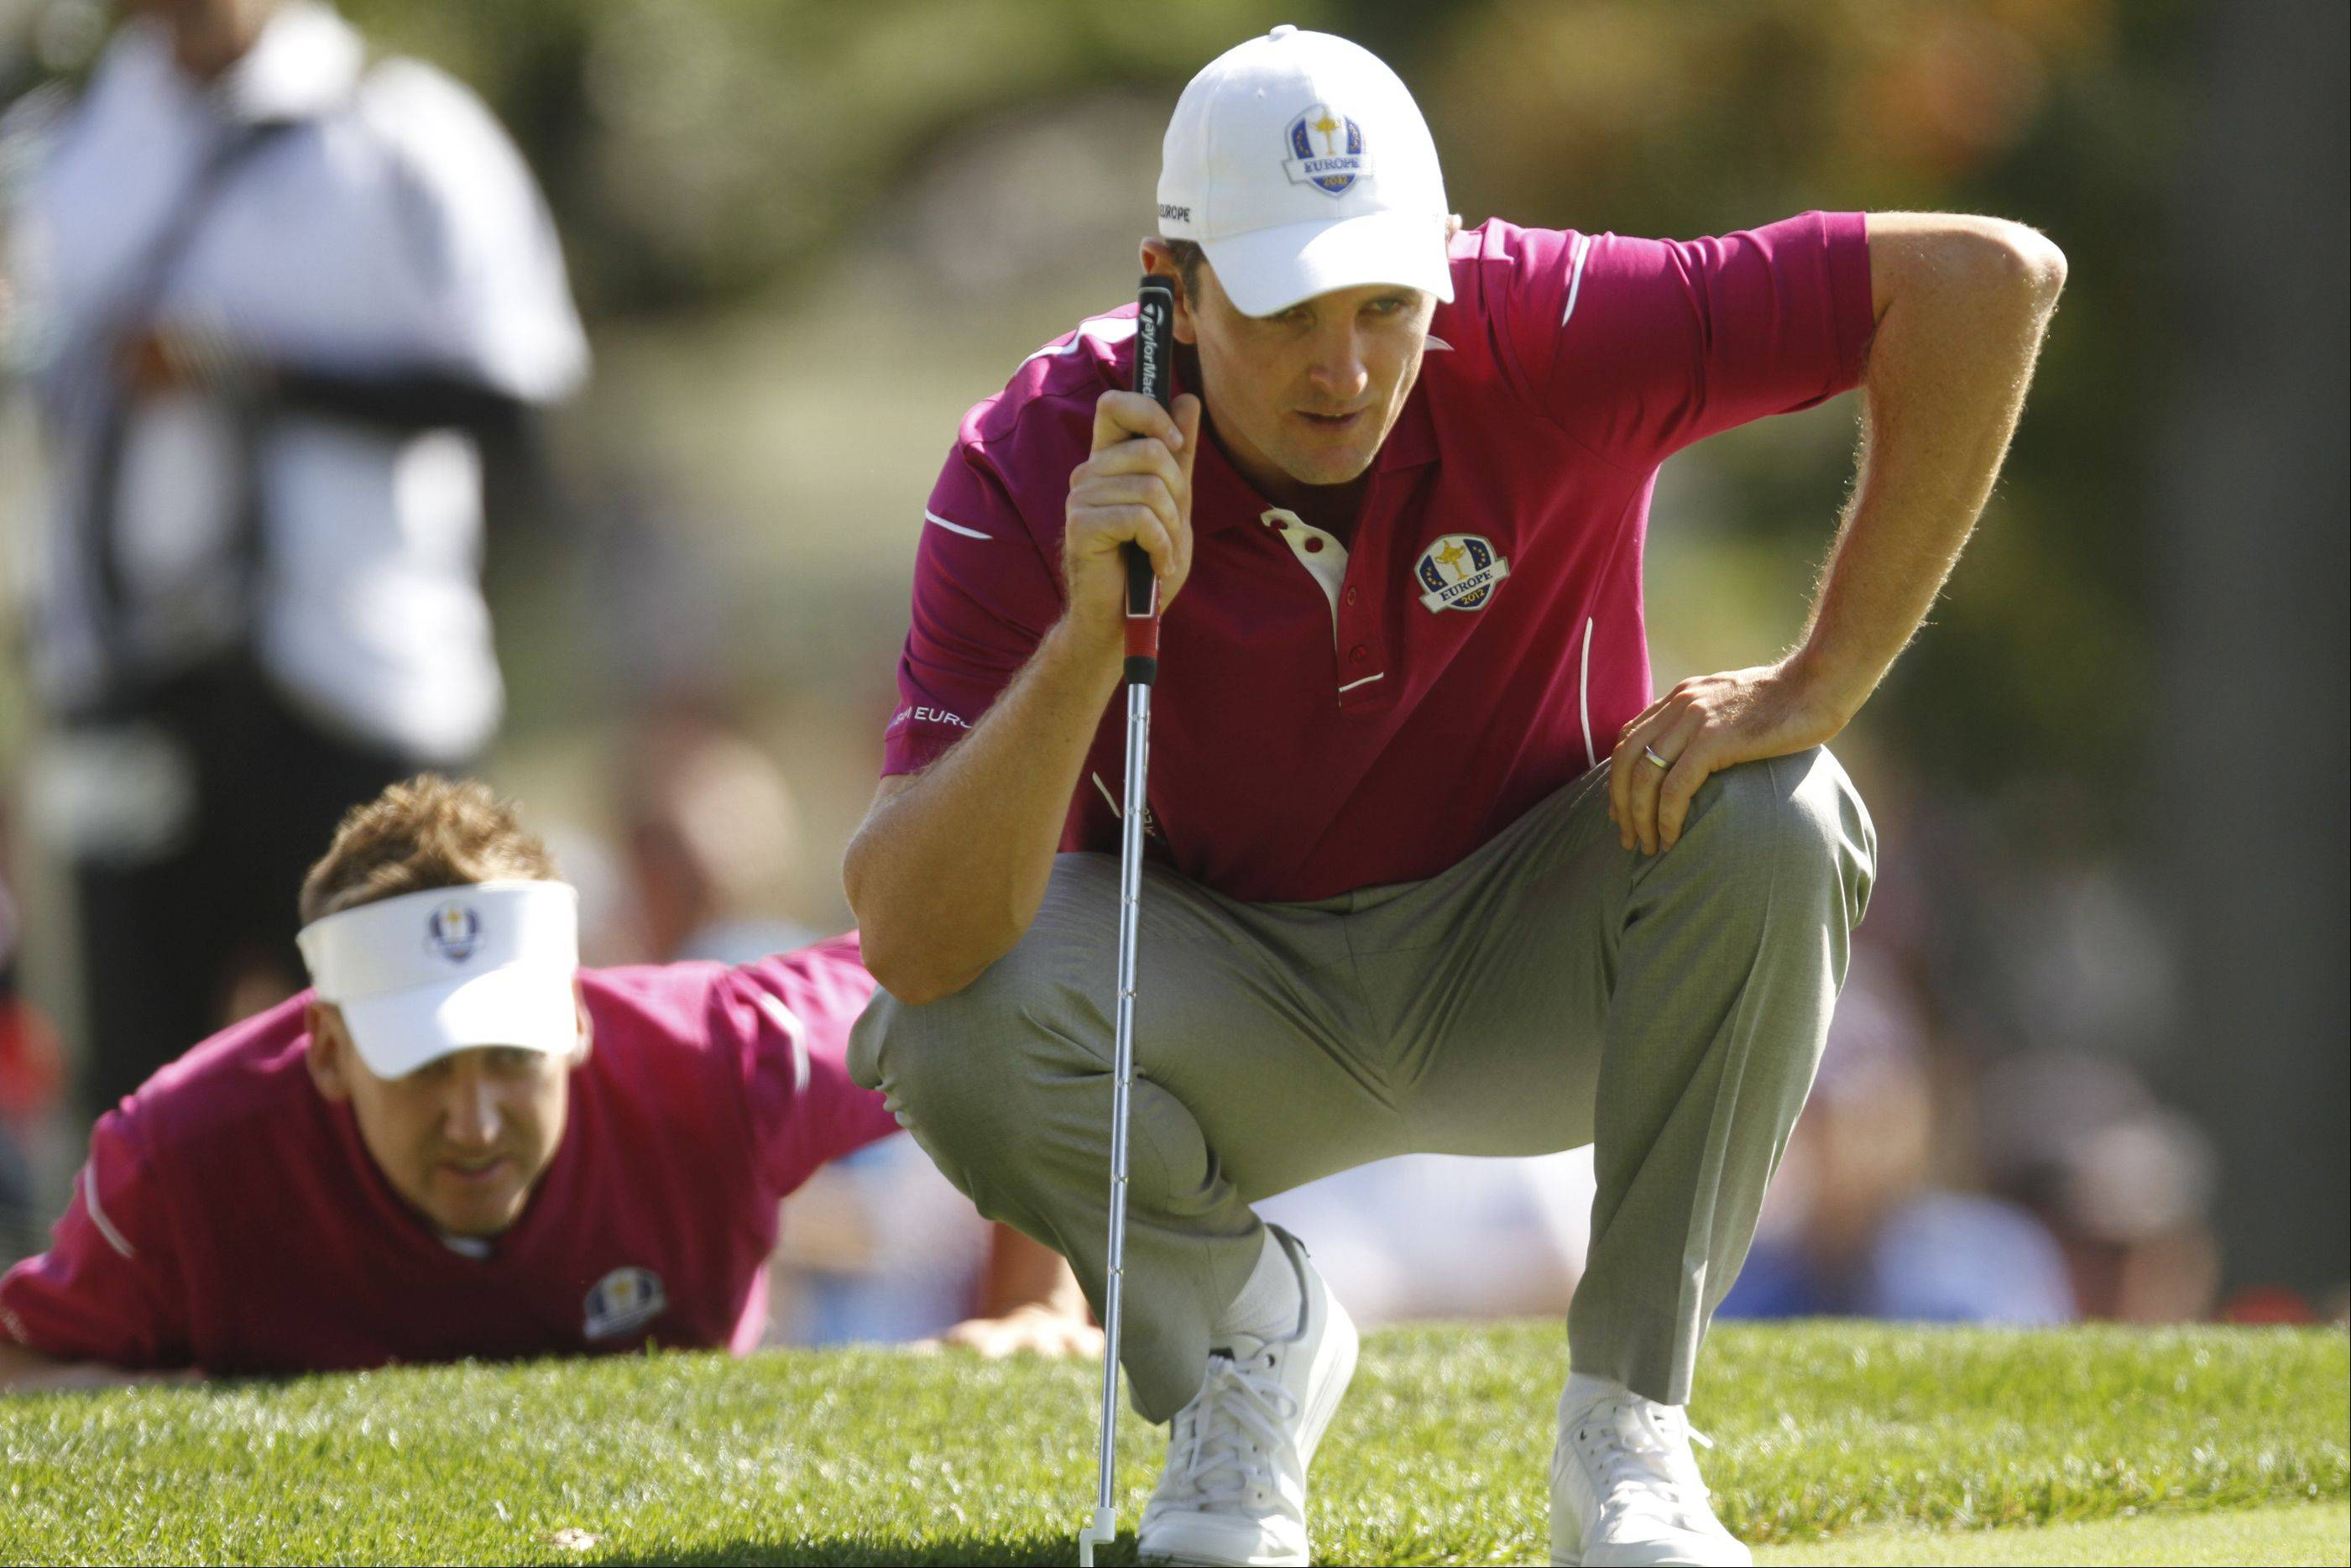 Ian Poulter, left, helps, helps Justin Rose line up his putt on the 16th hole Saturday morning during day 2of the 2012 Ryder Cup at Medinah Country Club.